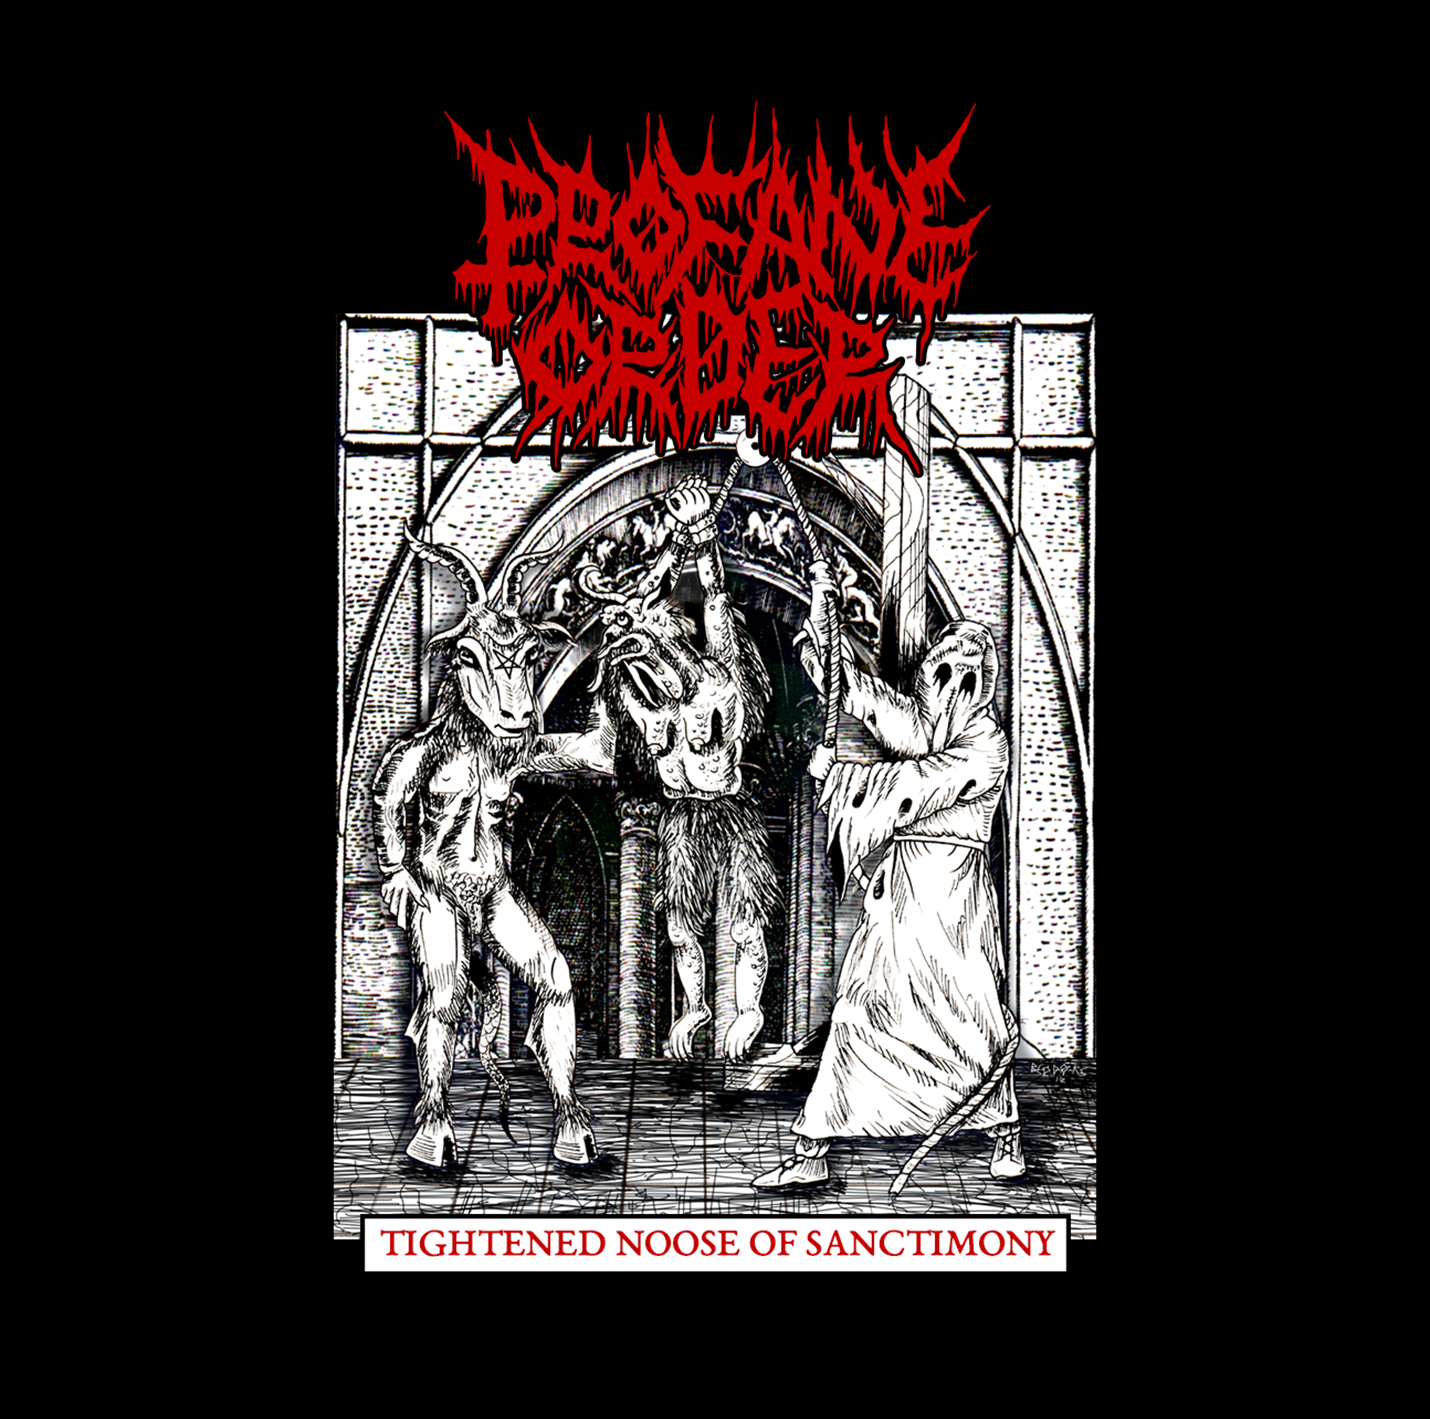 Profane Order - Tightened Noose of Sanctimony - Press Release + Full Stream.